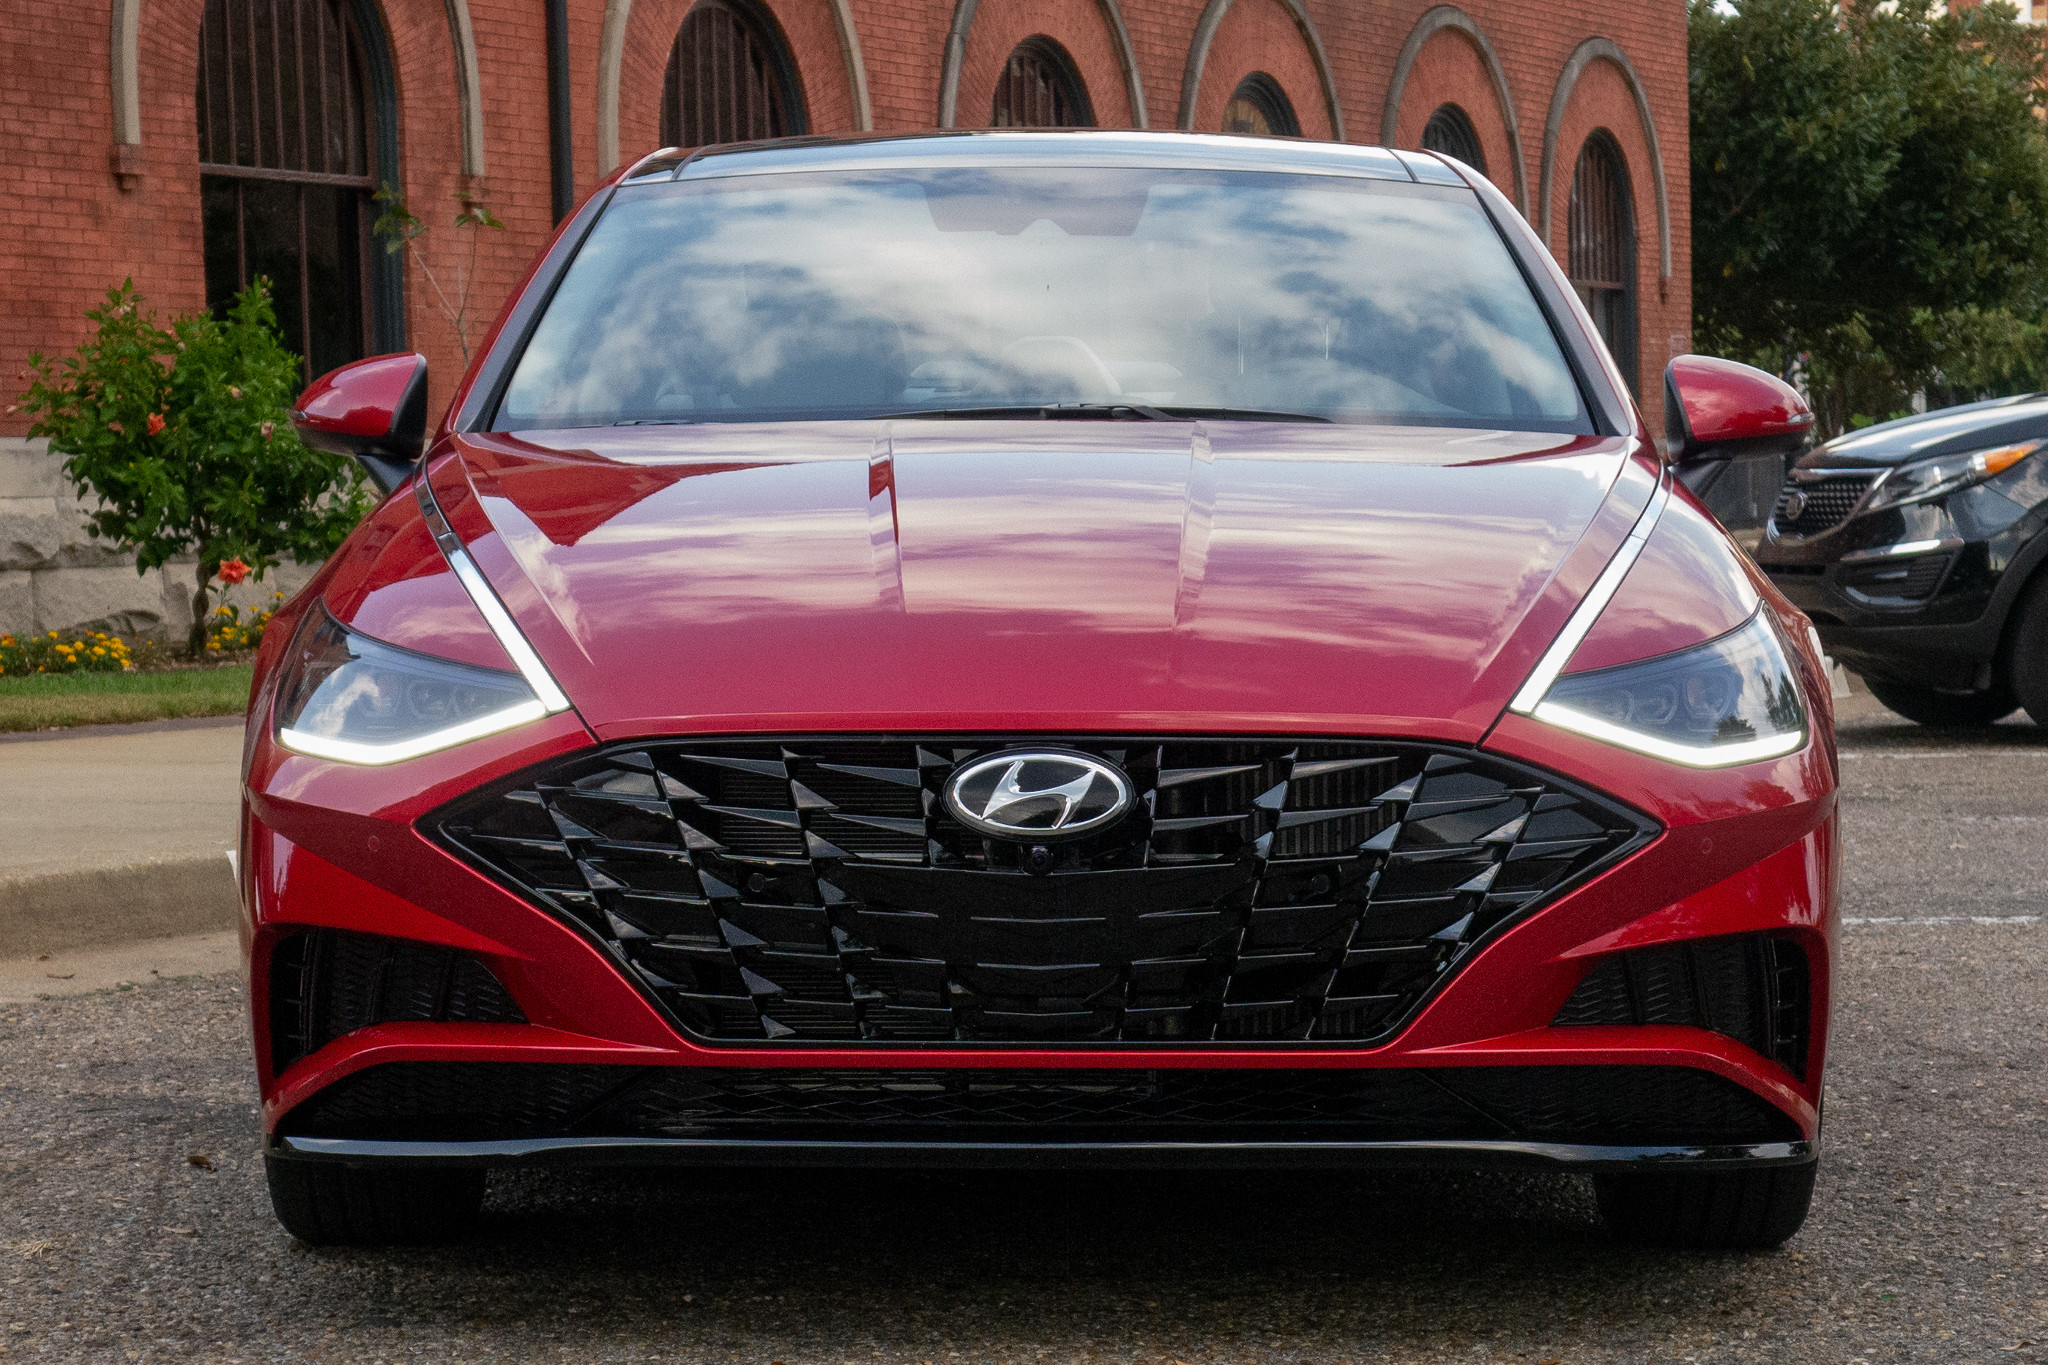 2020 Hyundai Sonata: Everything You Need to Know